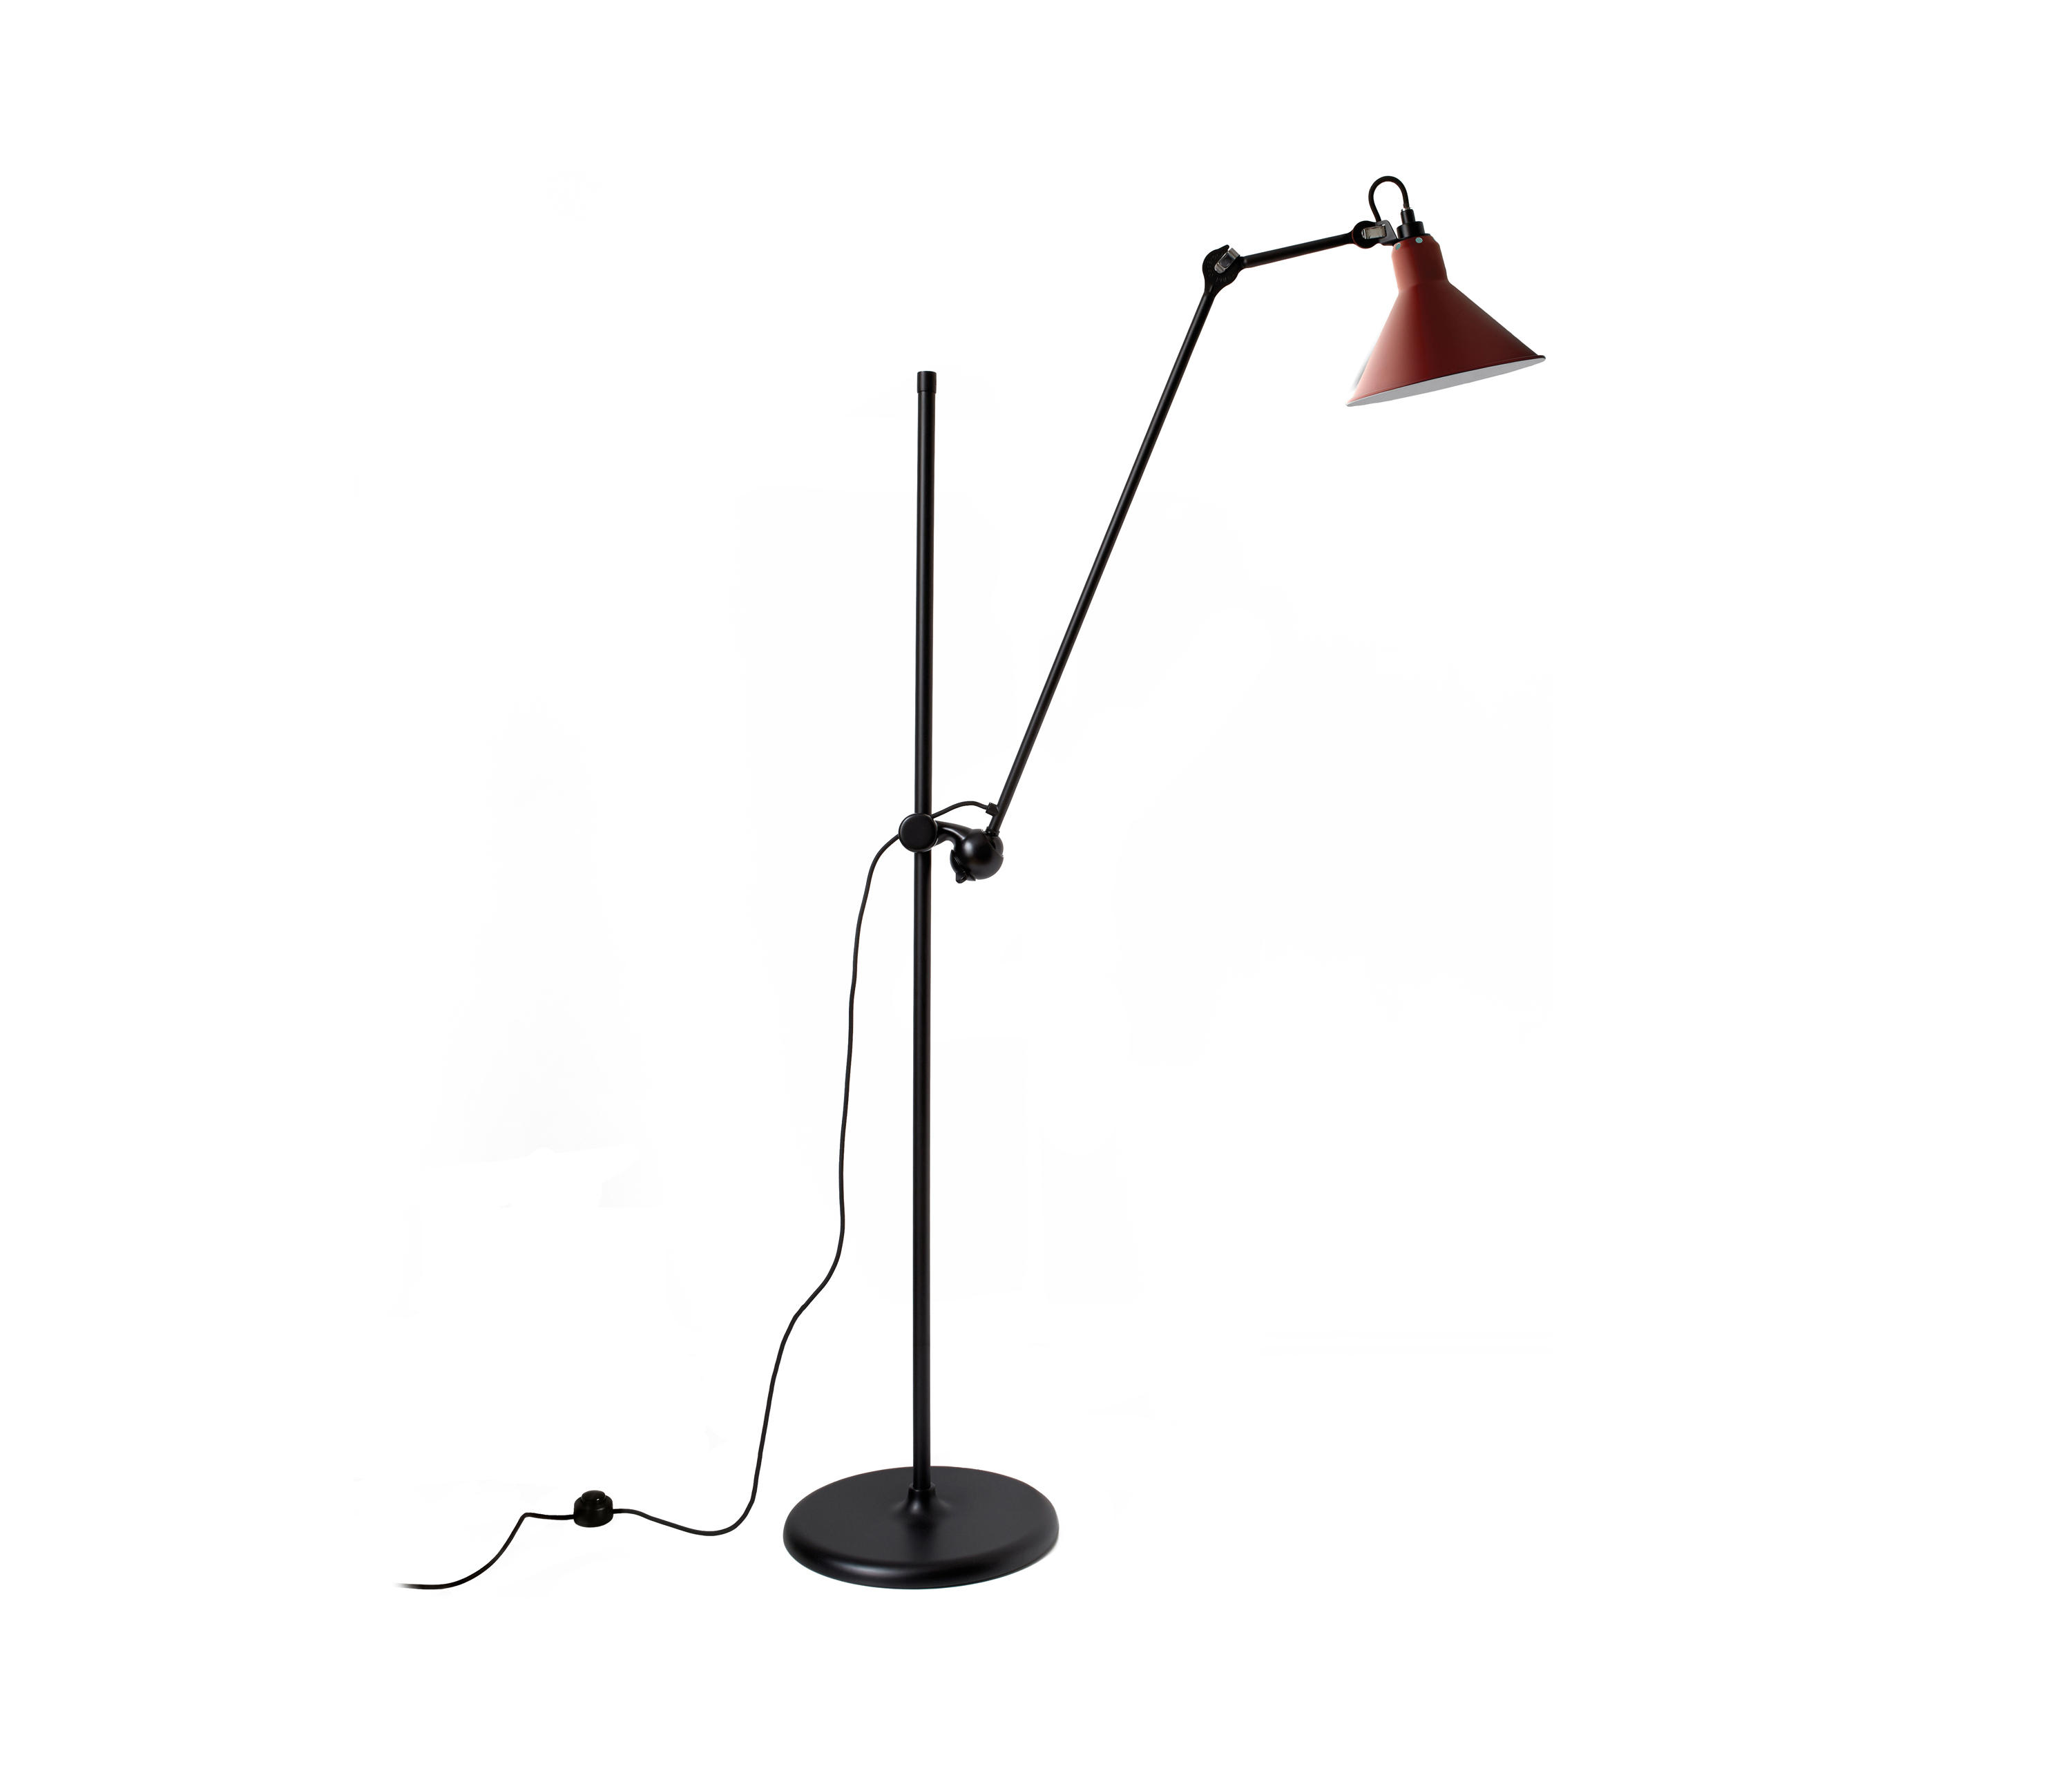 lampe gras n 215 l red general lighting from dcw ditions architonic. Black Bedroom Furniture Sets. Home Design Ideas